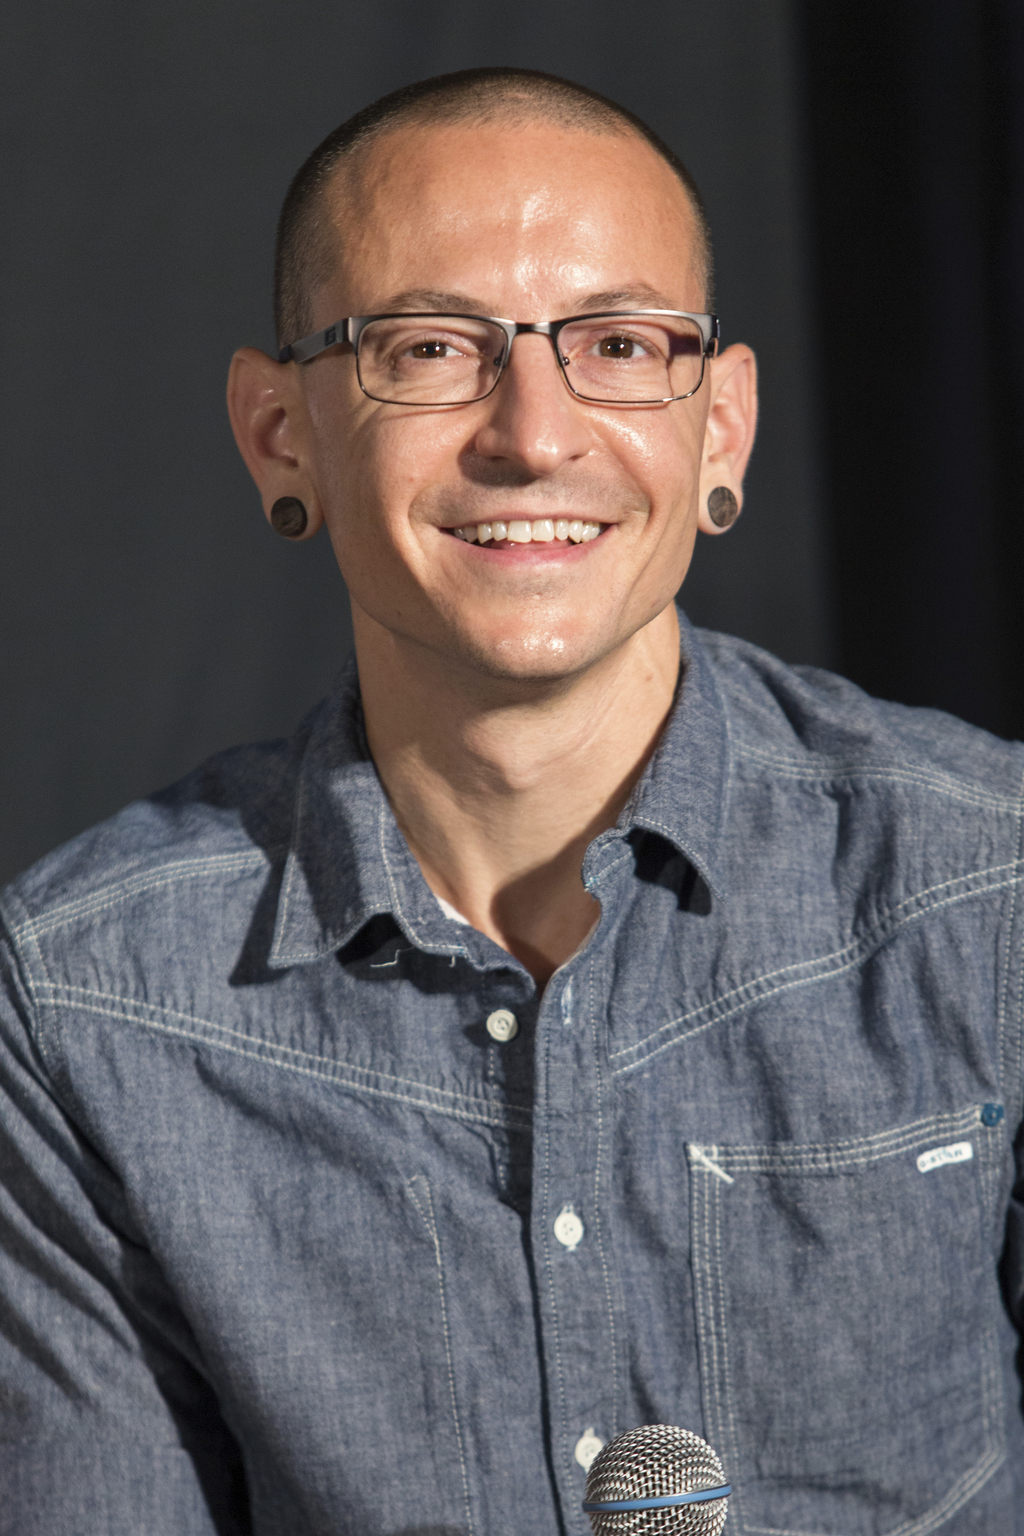 FILE - In this June 18, 2014 file photo, Chester Bennington of Linkin Park attends Linkin Park's induction into the Guitar Center's RockWalk in Los An...